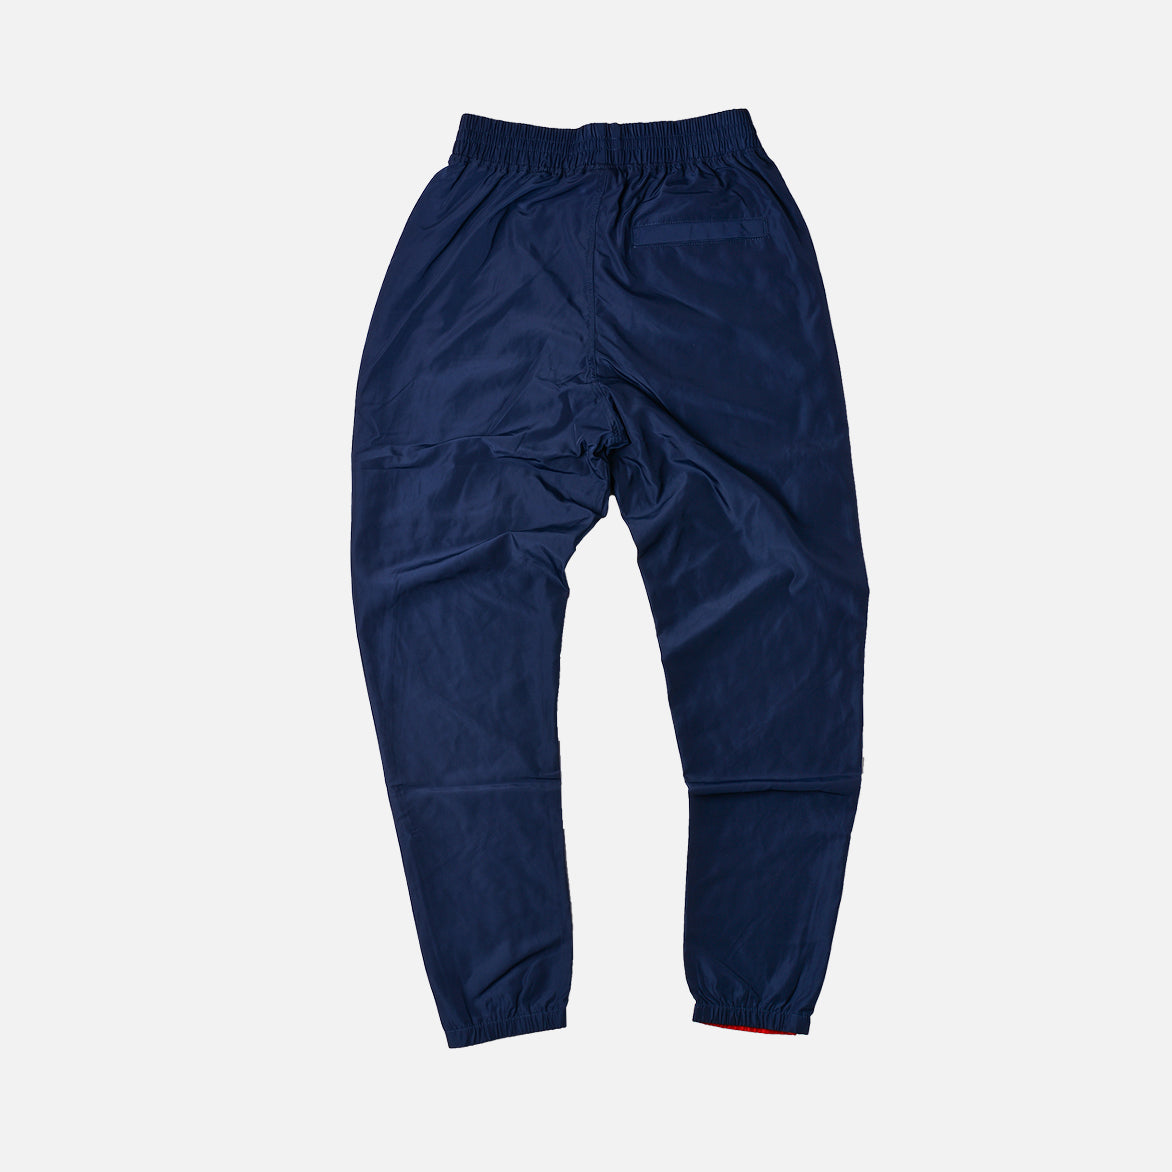 BLOCK AND LOCK PANT - MEDIEVAL BLUE